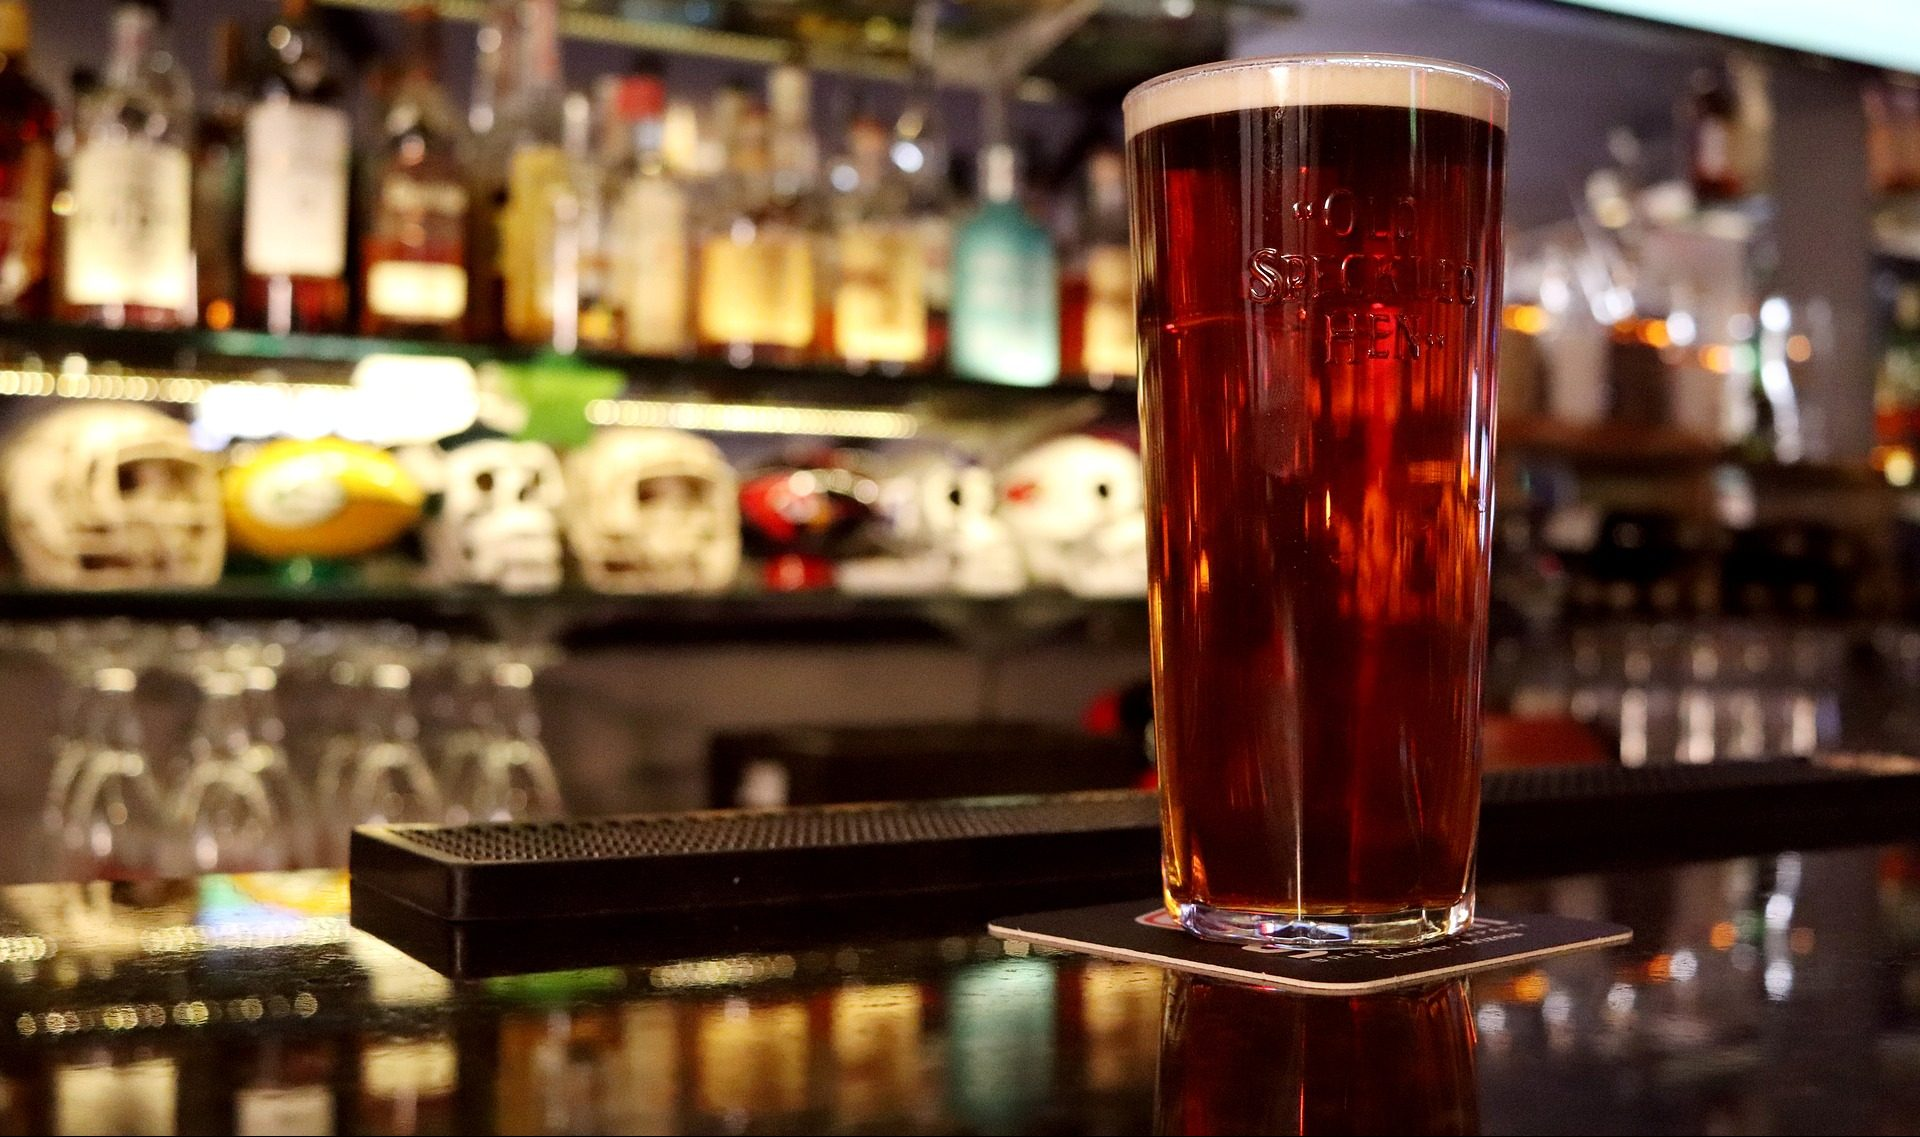 Coronavirus crisis: Britain's beloved pubs could close under Government's new 'delay' measures